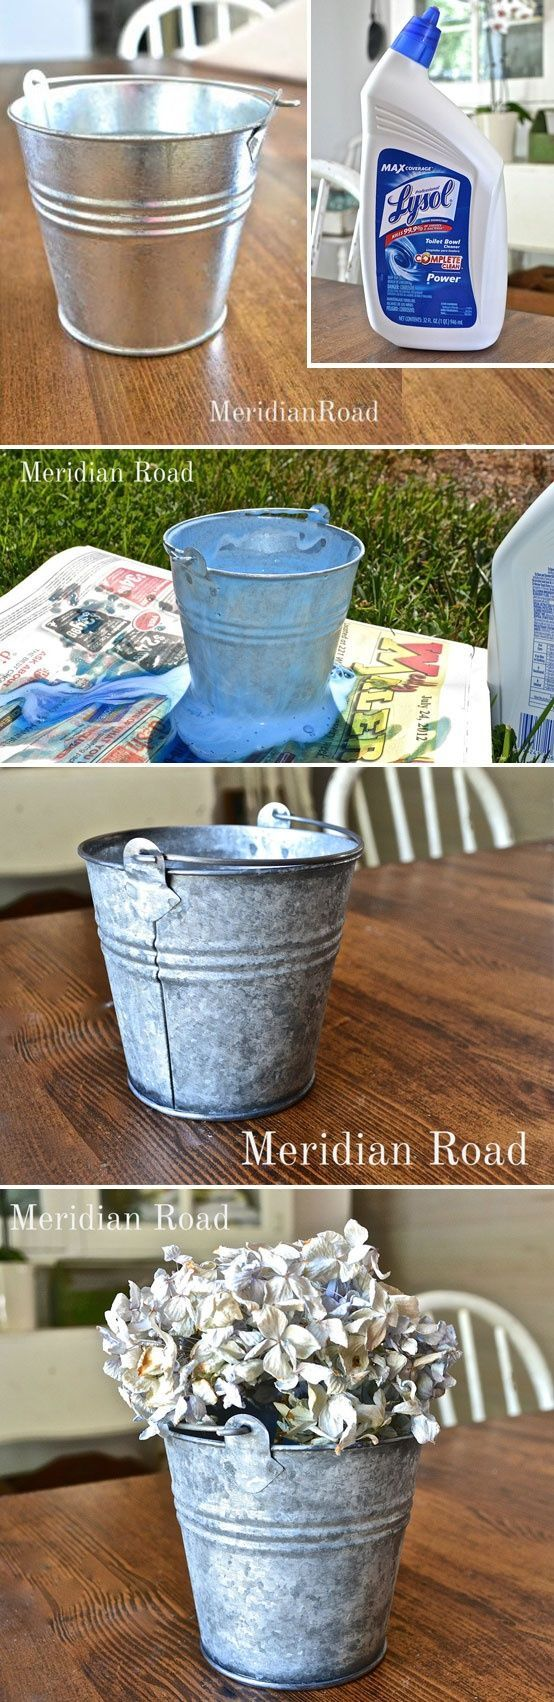 best diy projects images on pinterest cleaning creative and